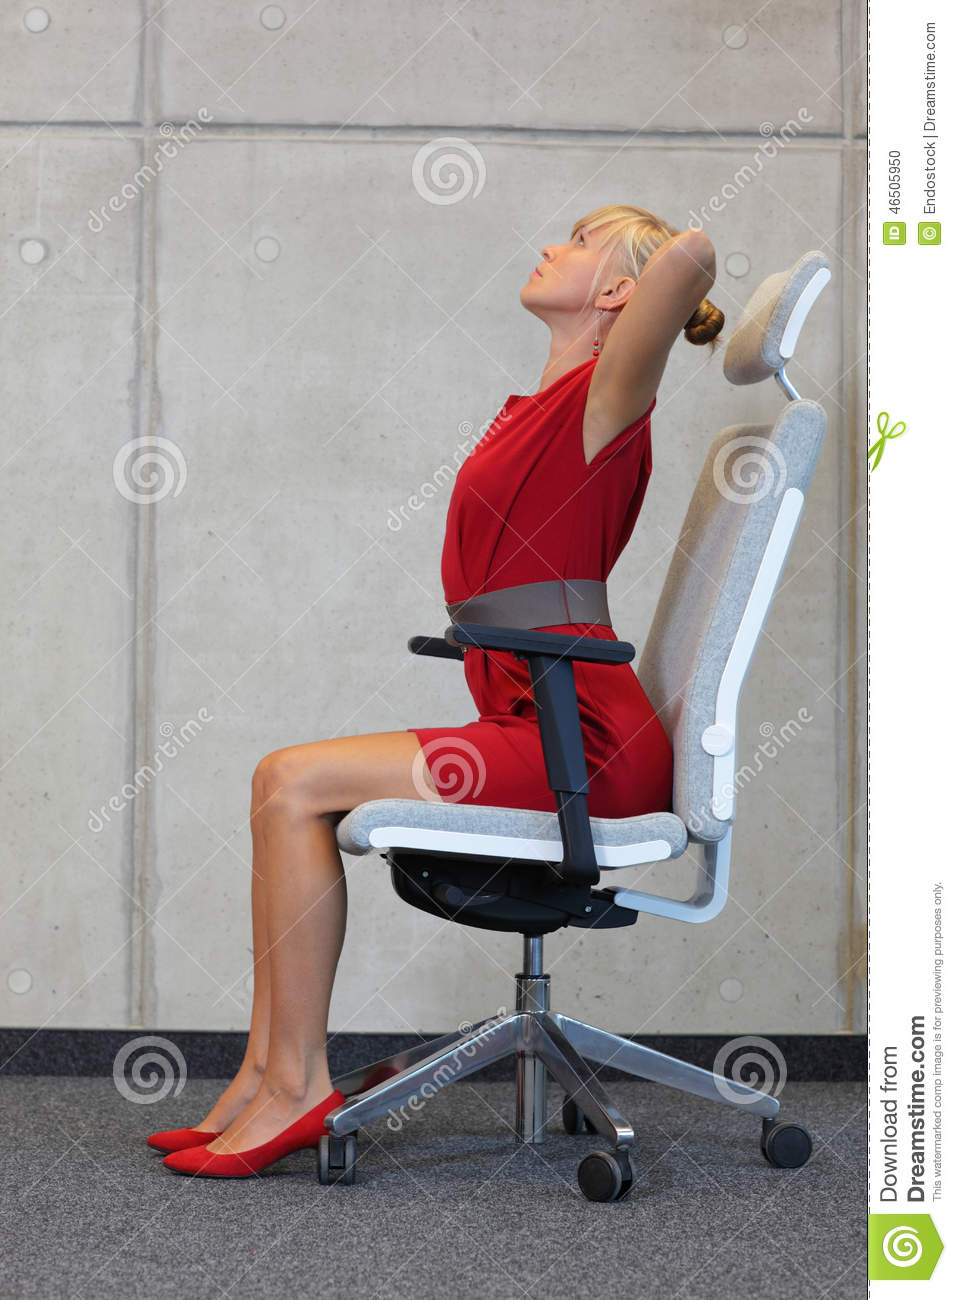 Stress Reduction In Office Work Woman Exercising On